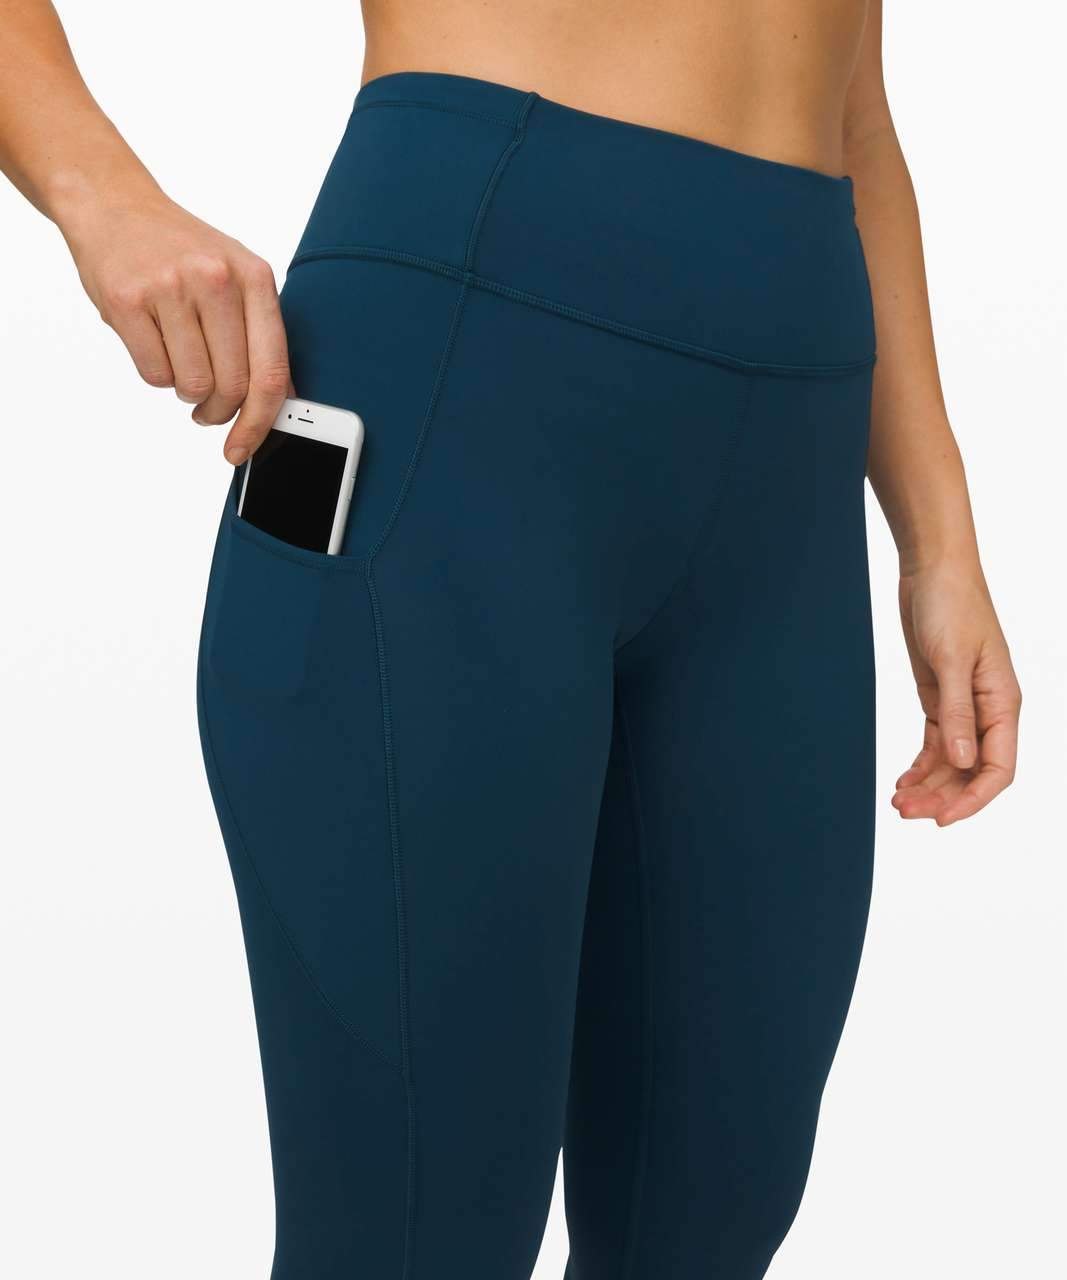 Lululemon Fast and Free High-Rise Crop II *Non-Reflective Nulux - Night Diver